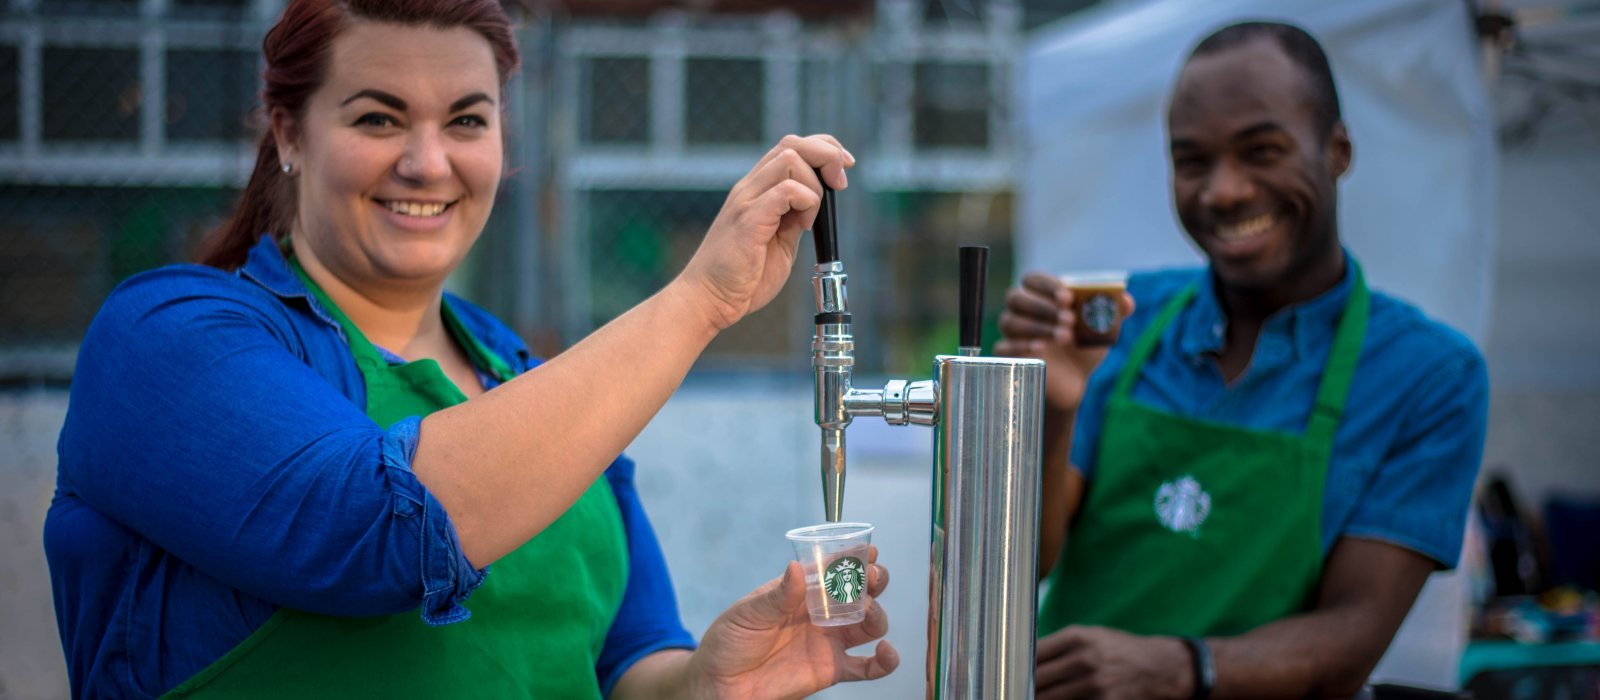 Two Starbucks employees giving out samples at the Fringe patio